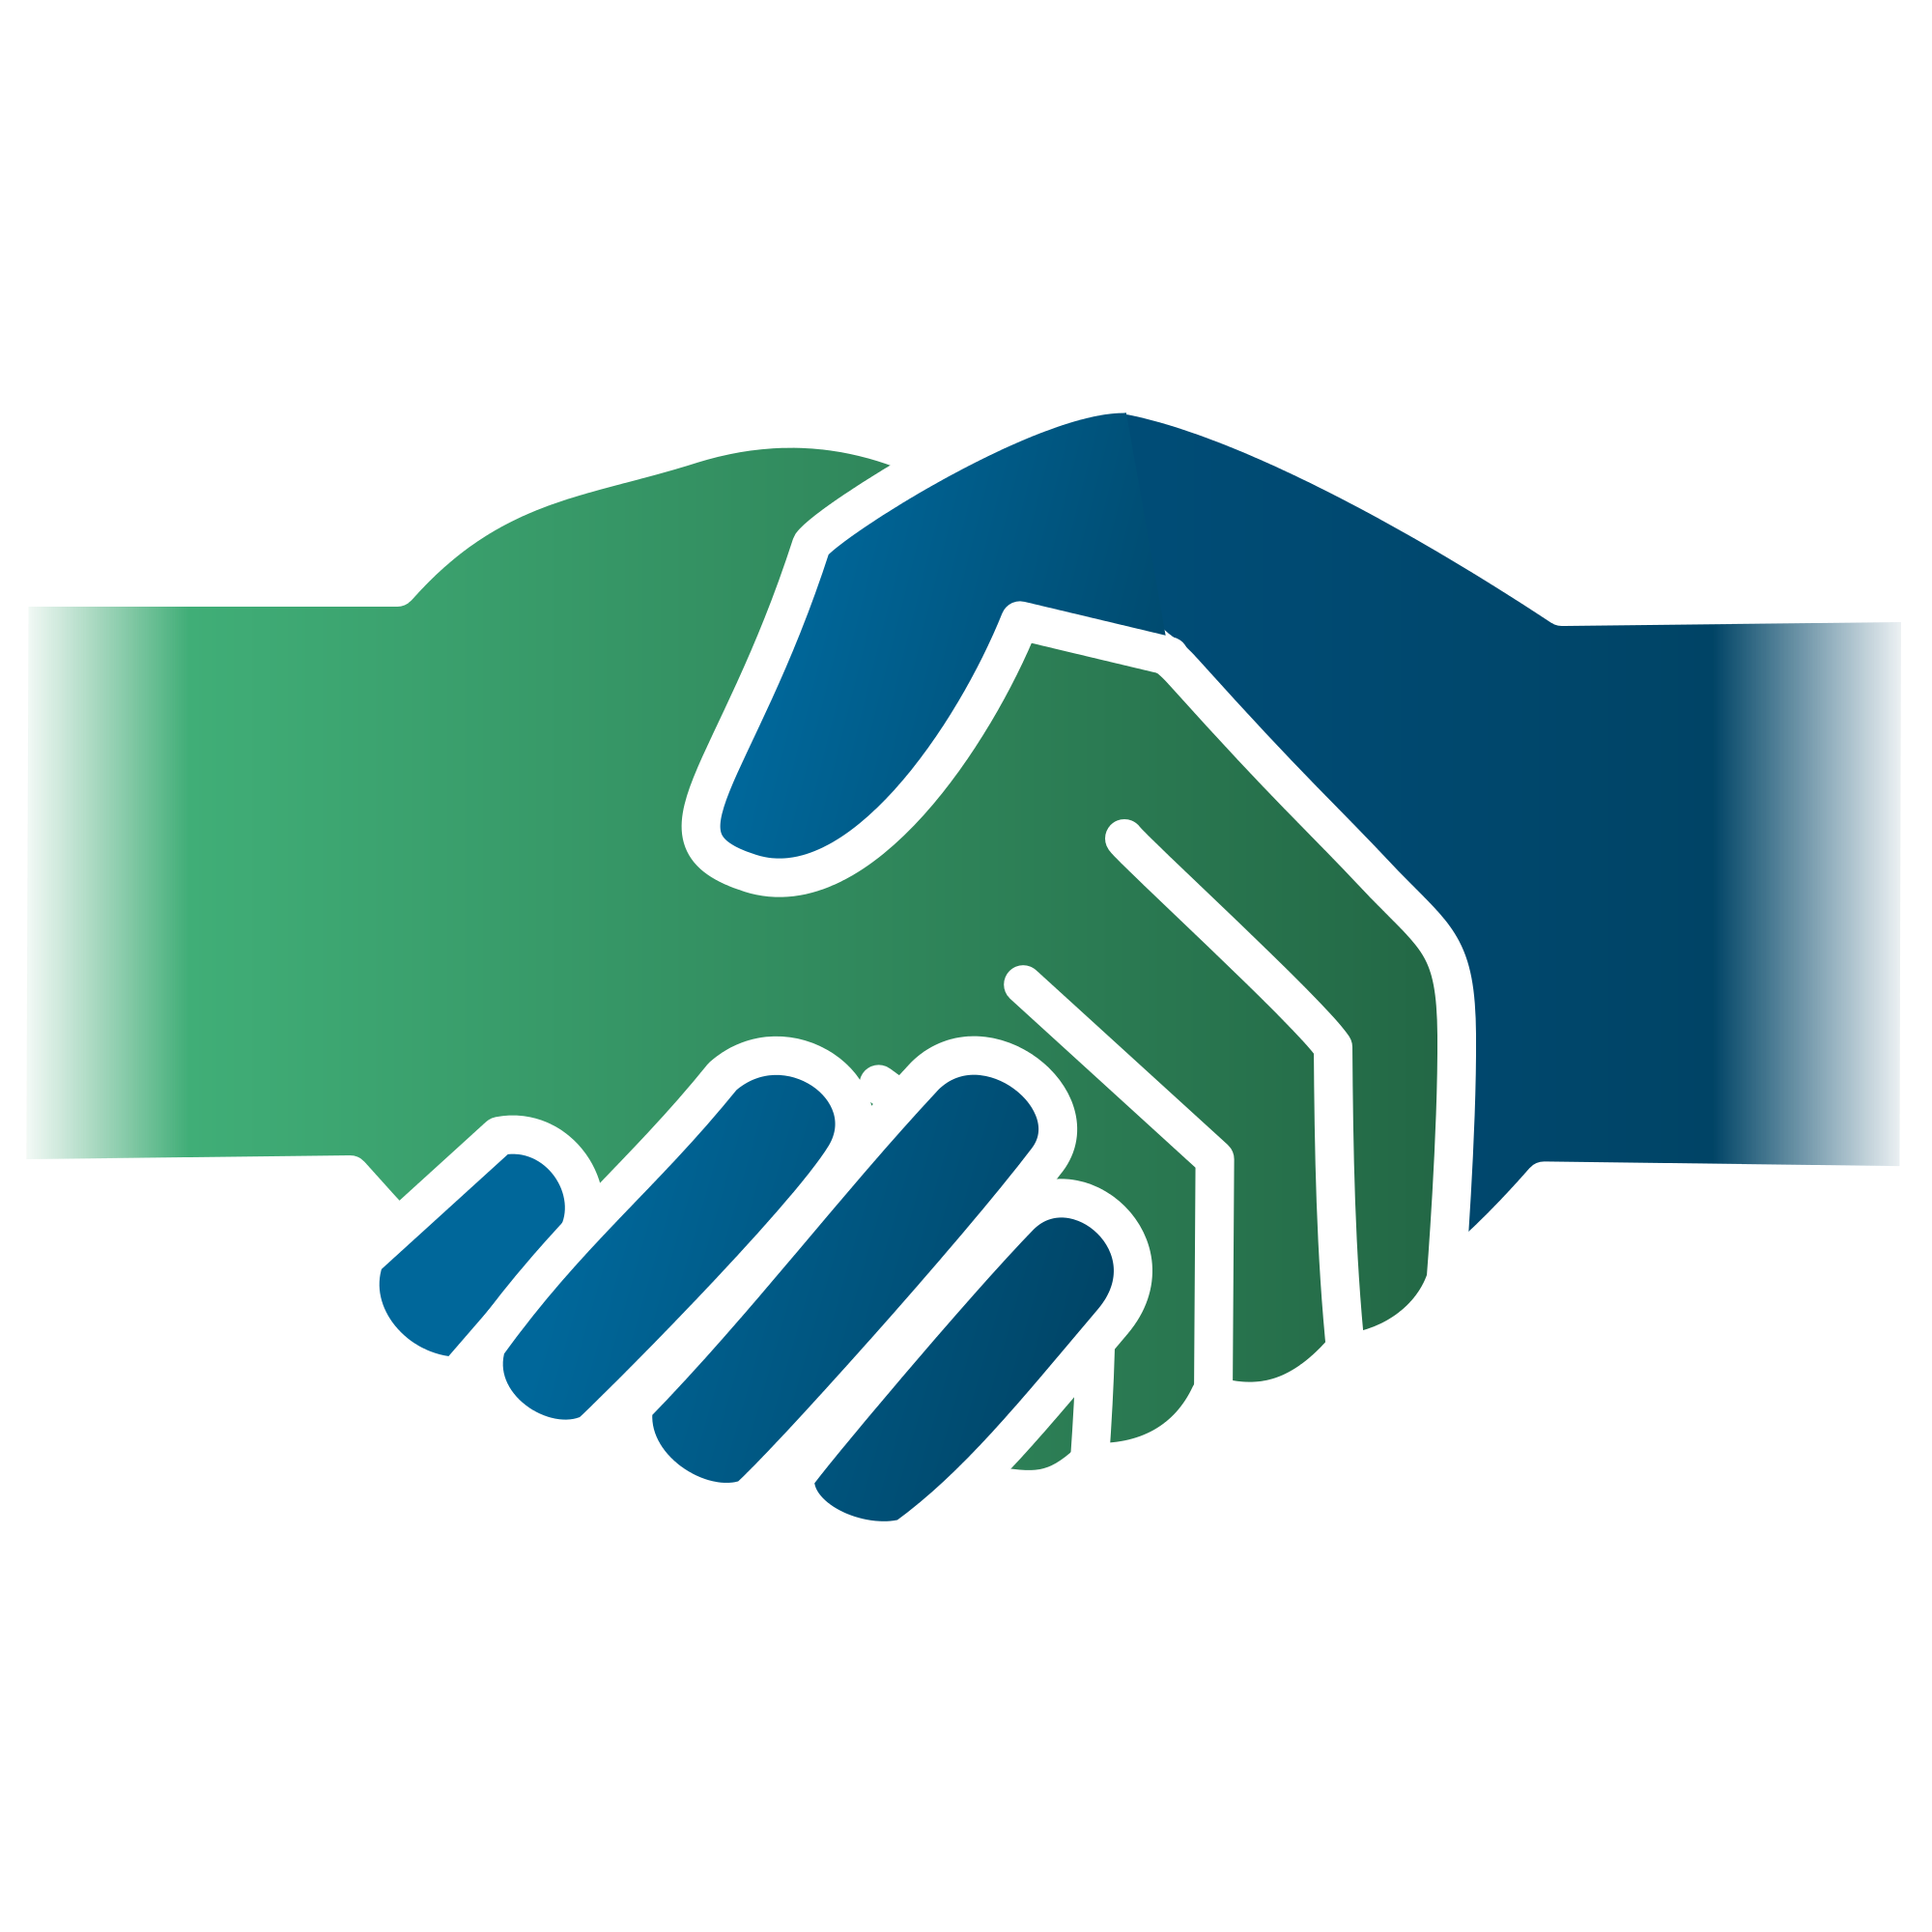 The ask amount capital. Handshake clipart support